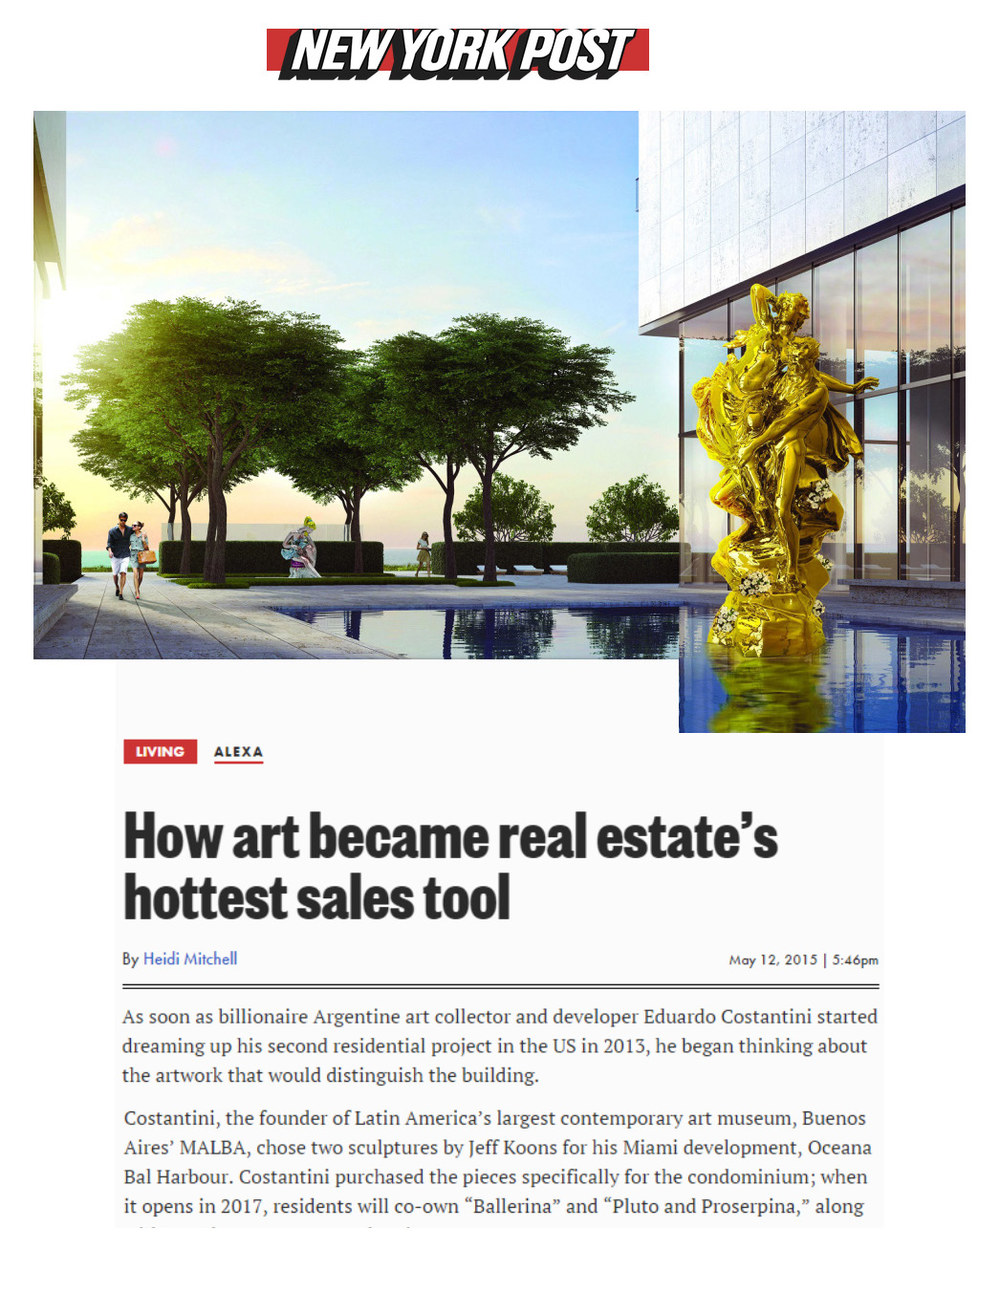 New York Post - How art became real estates hottest sales tool_Page_1.jpg